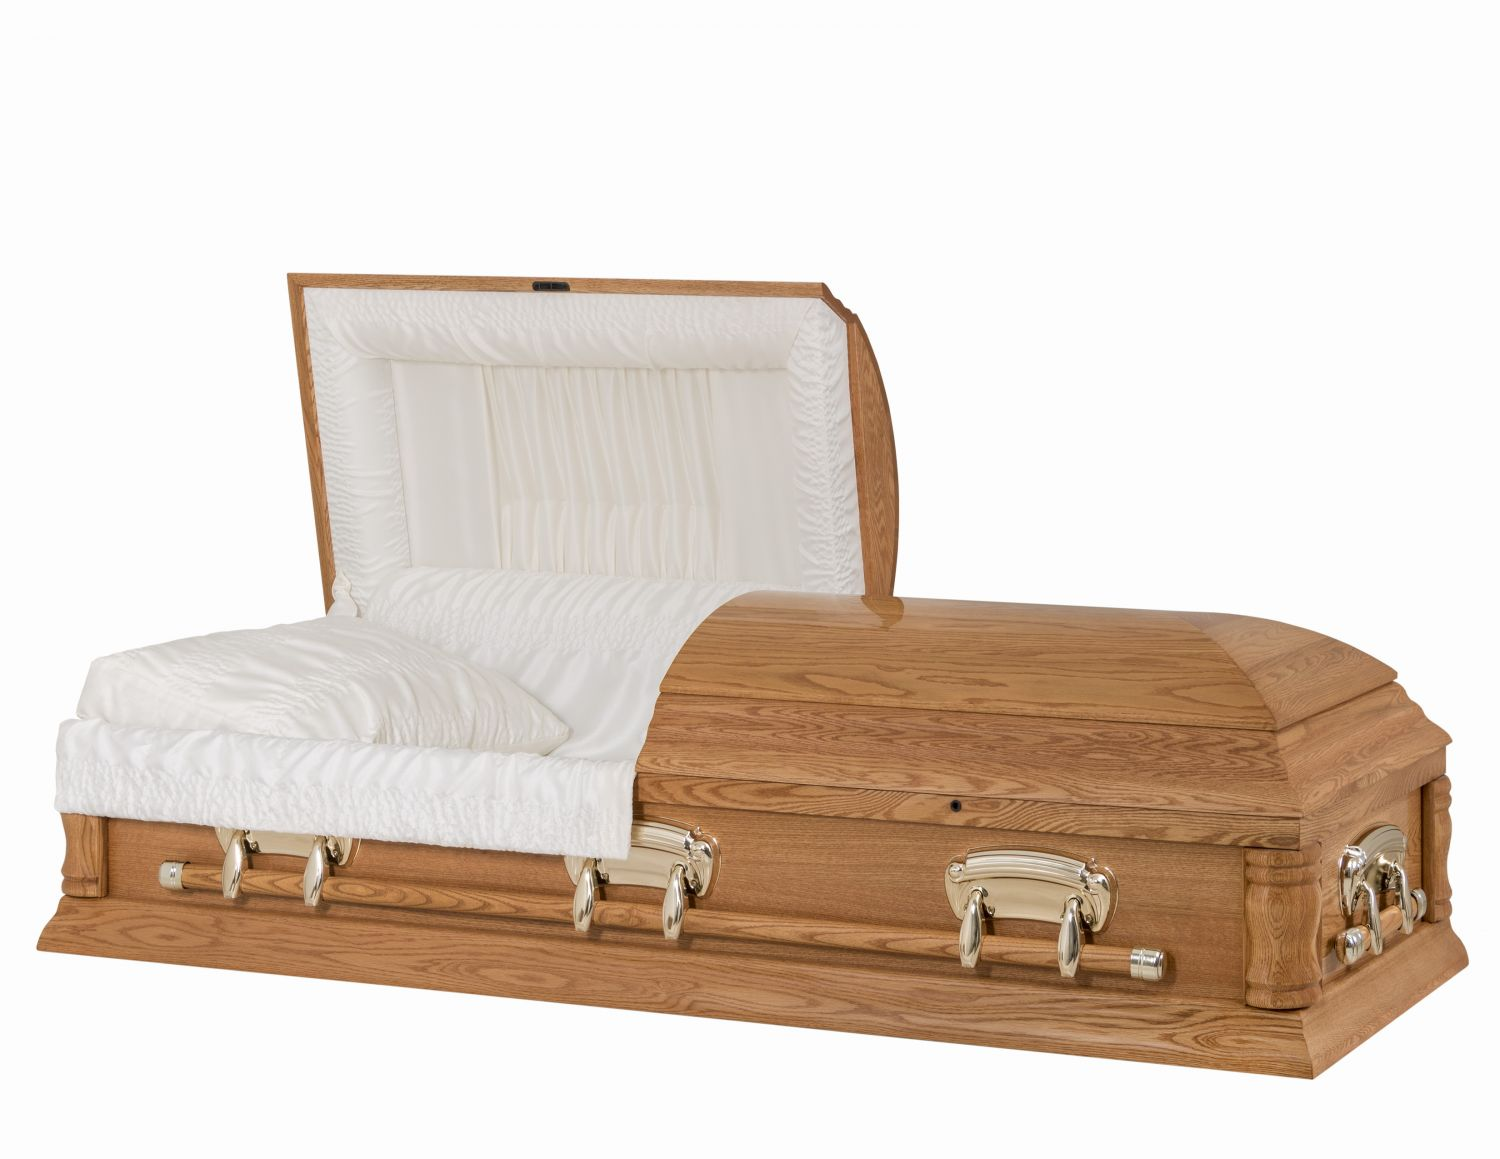 Concept Caskets 65U39-00001 OAK CASKET POLISHED CREPE MEDIUM WOOD FIBER NO H1306-6    3X 1 GOLD